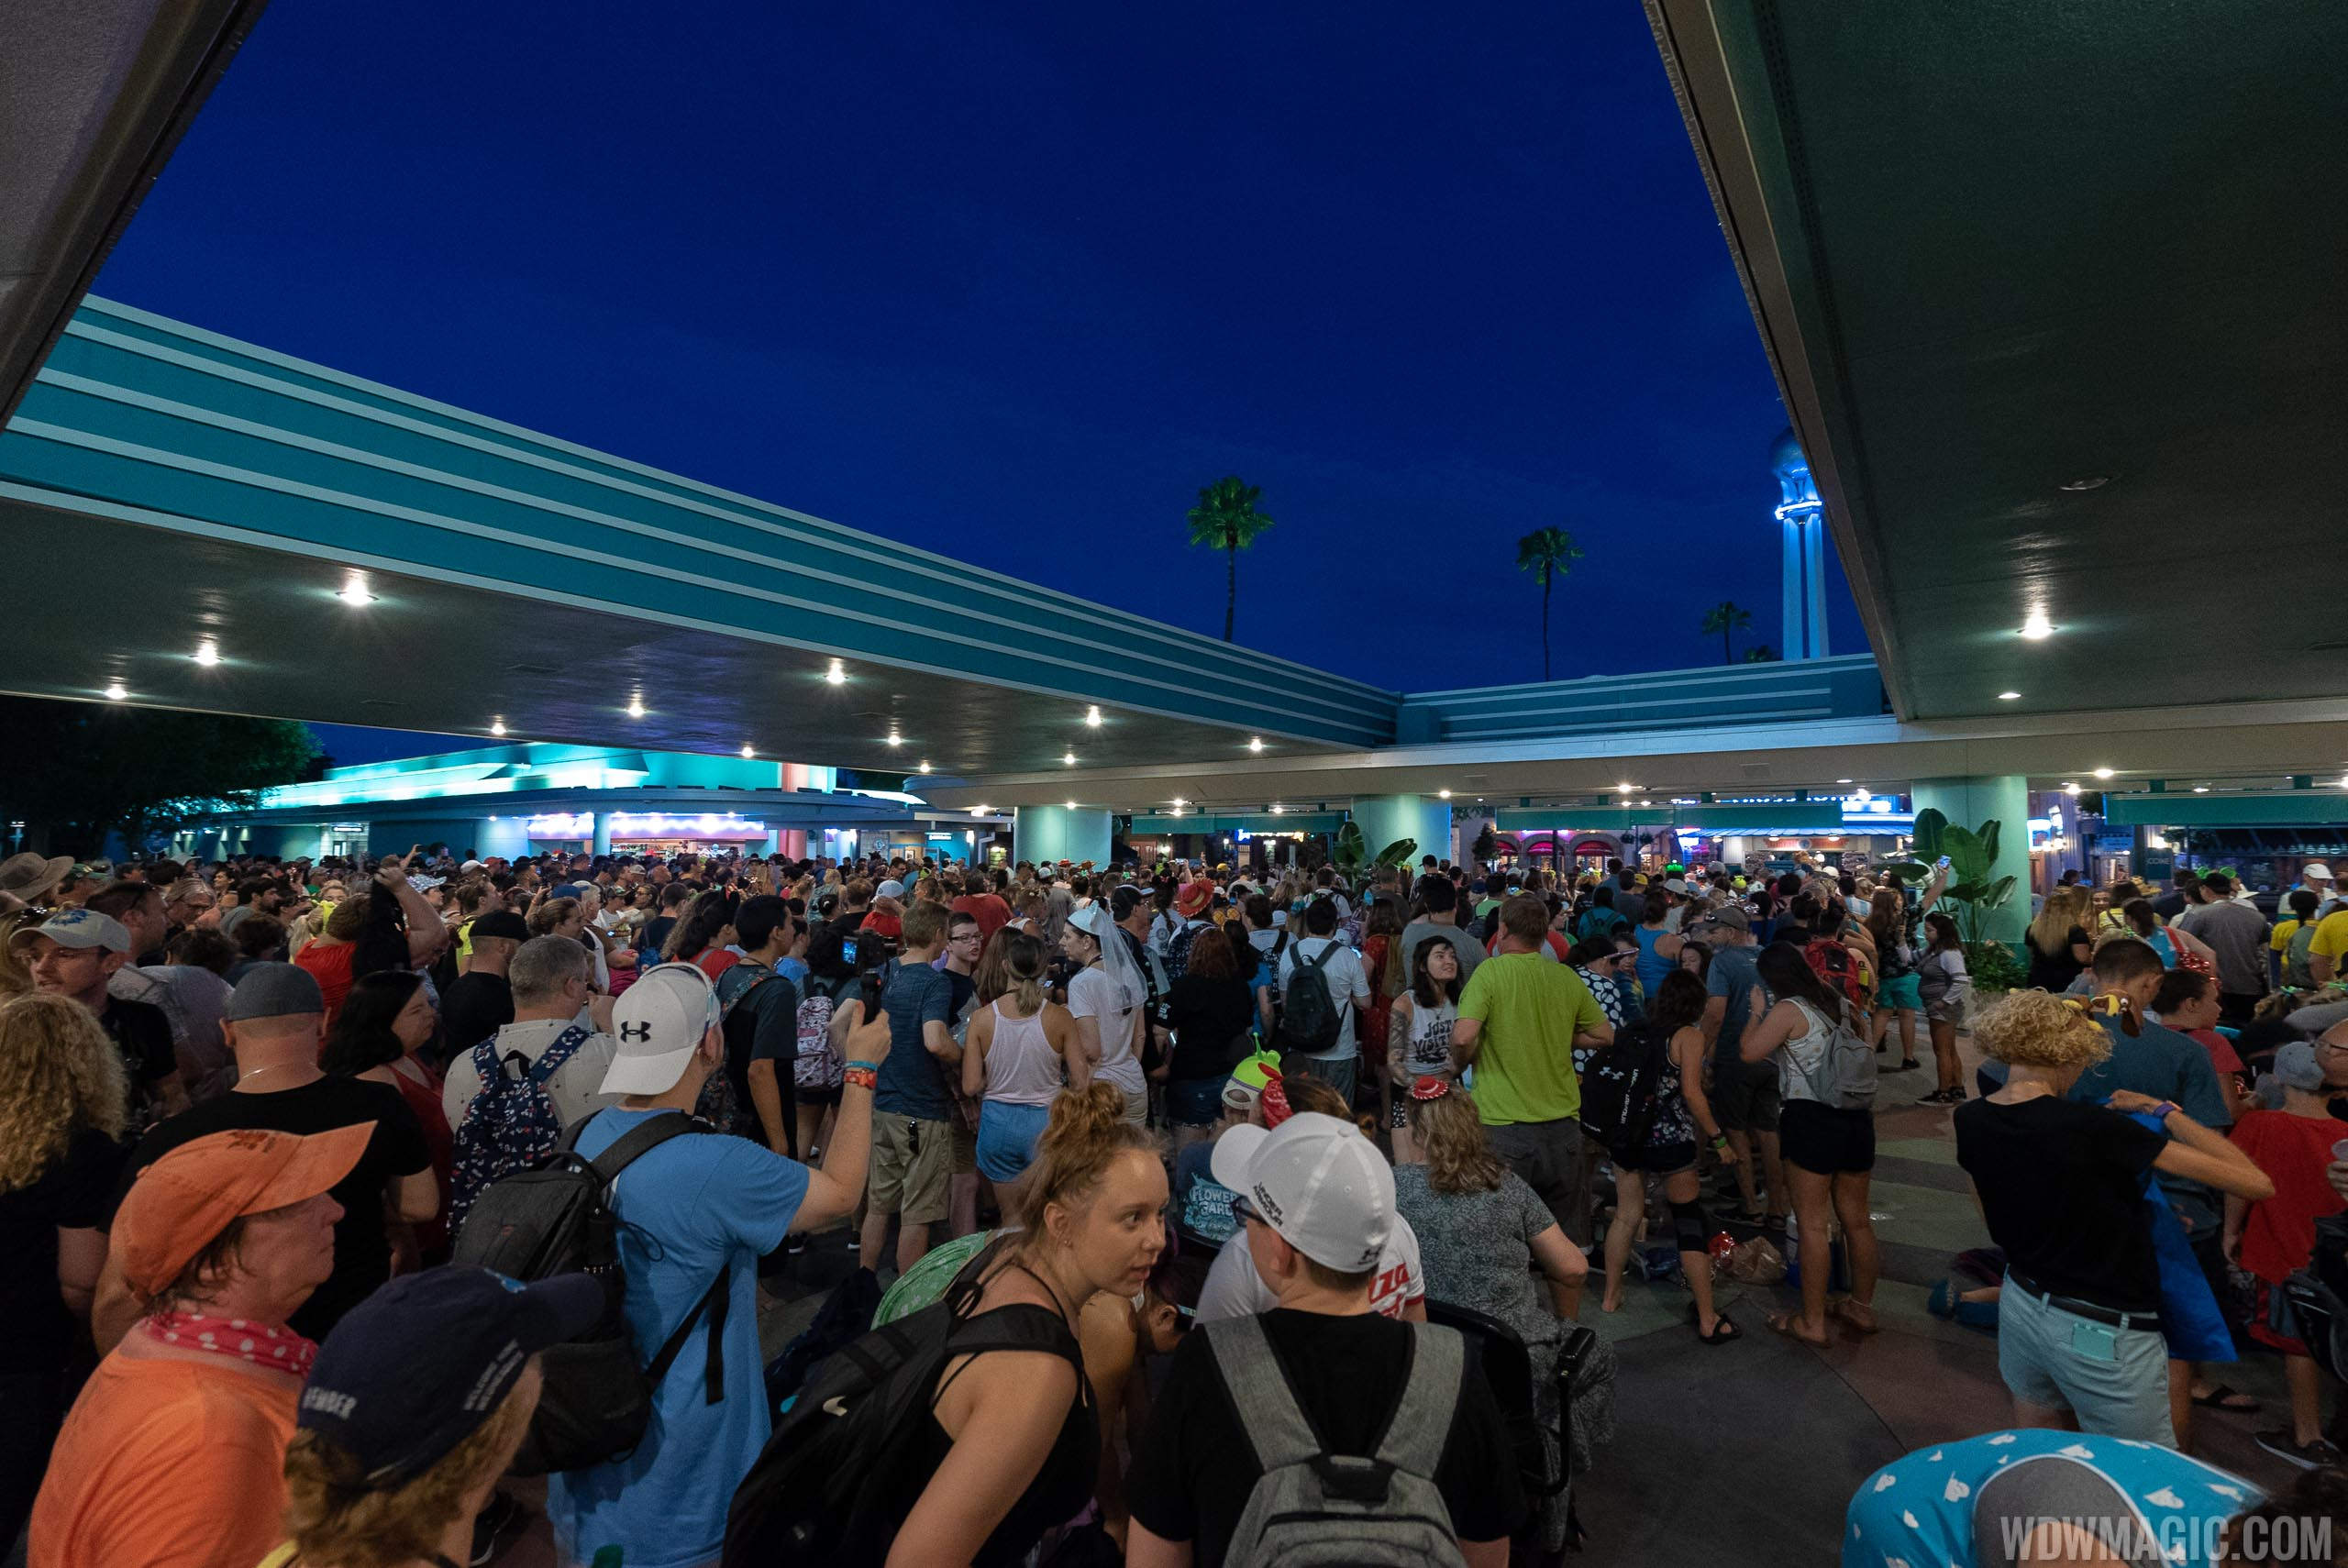 Guests began queuing at 4:30am to enter Disney's Hollywood Studios